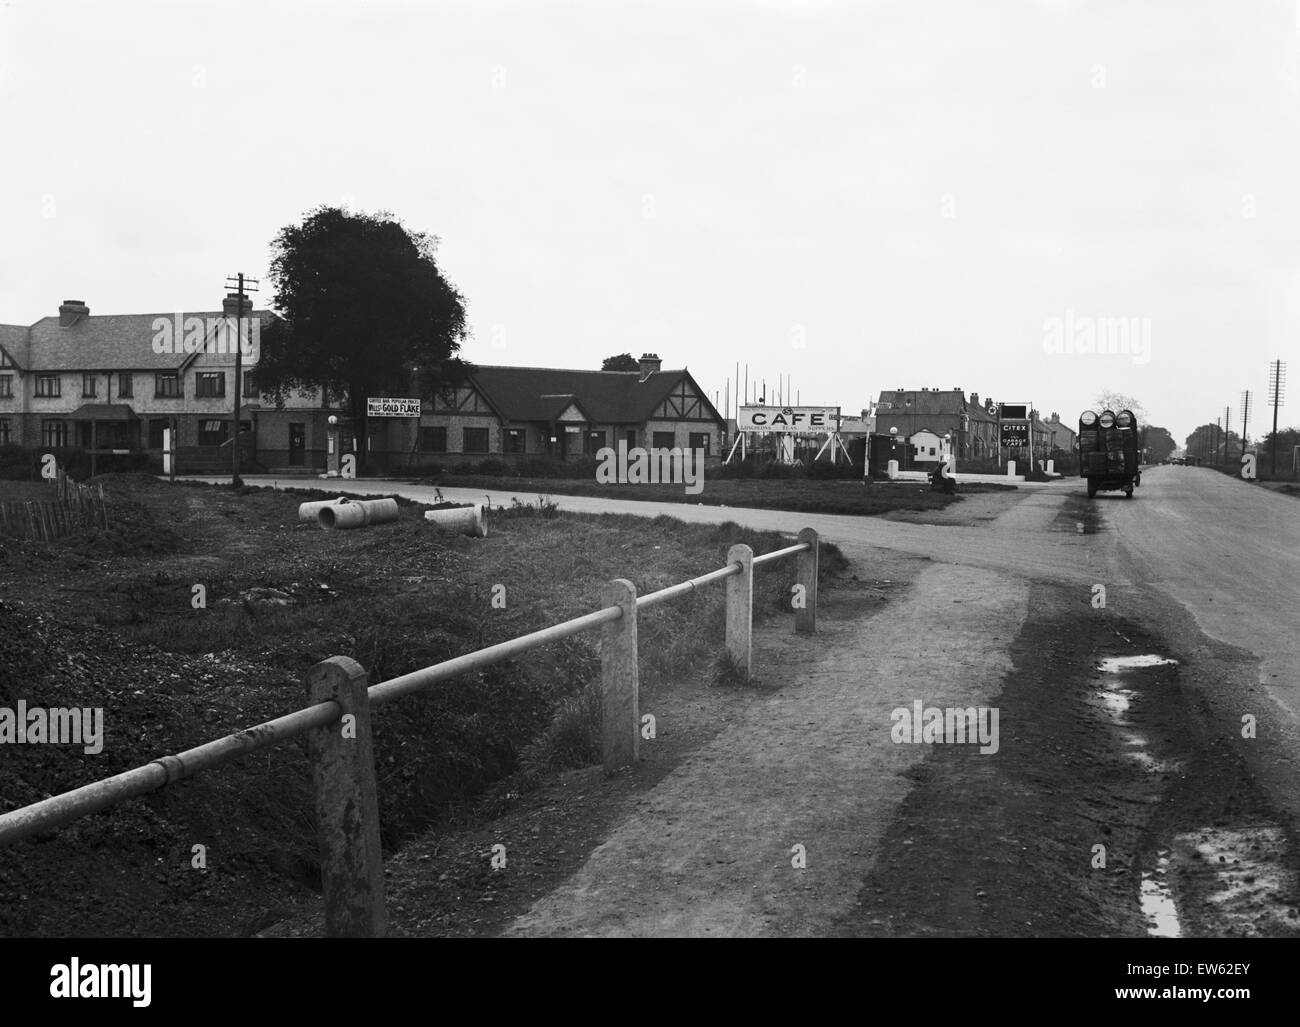 The Triple SSS Cafe at the junction of the A408 and B379 West Drayton, London. Circa 1931. - Stock Image